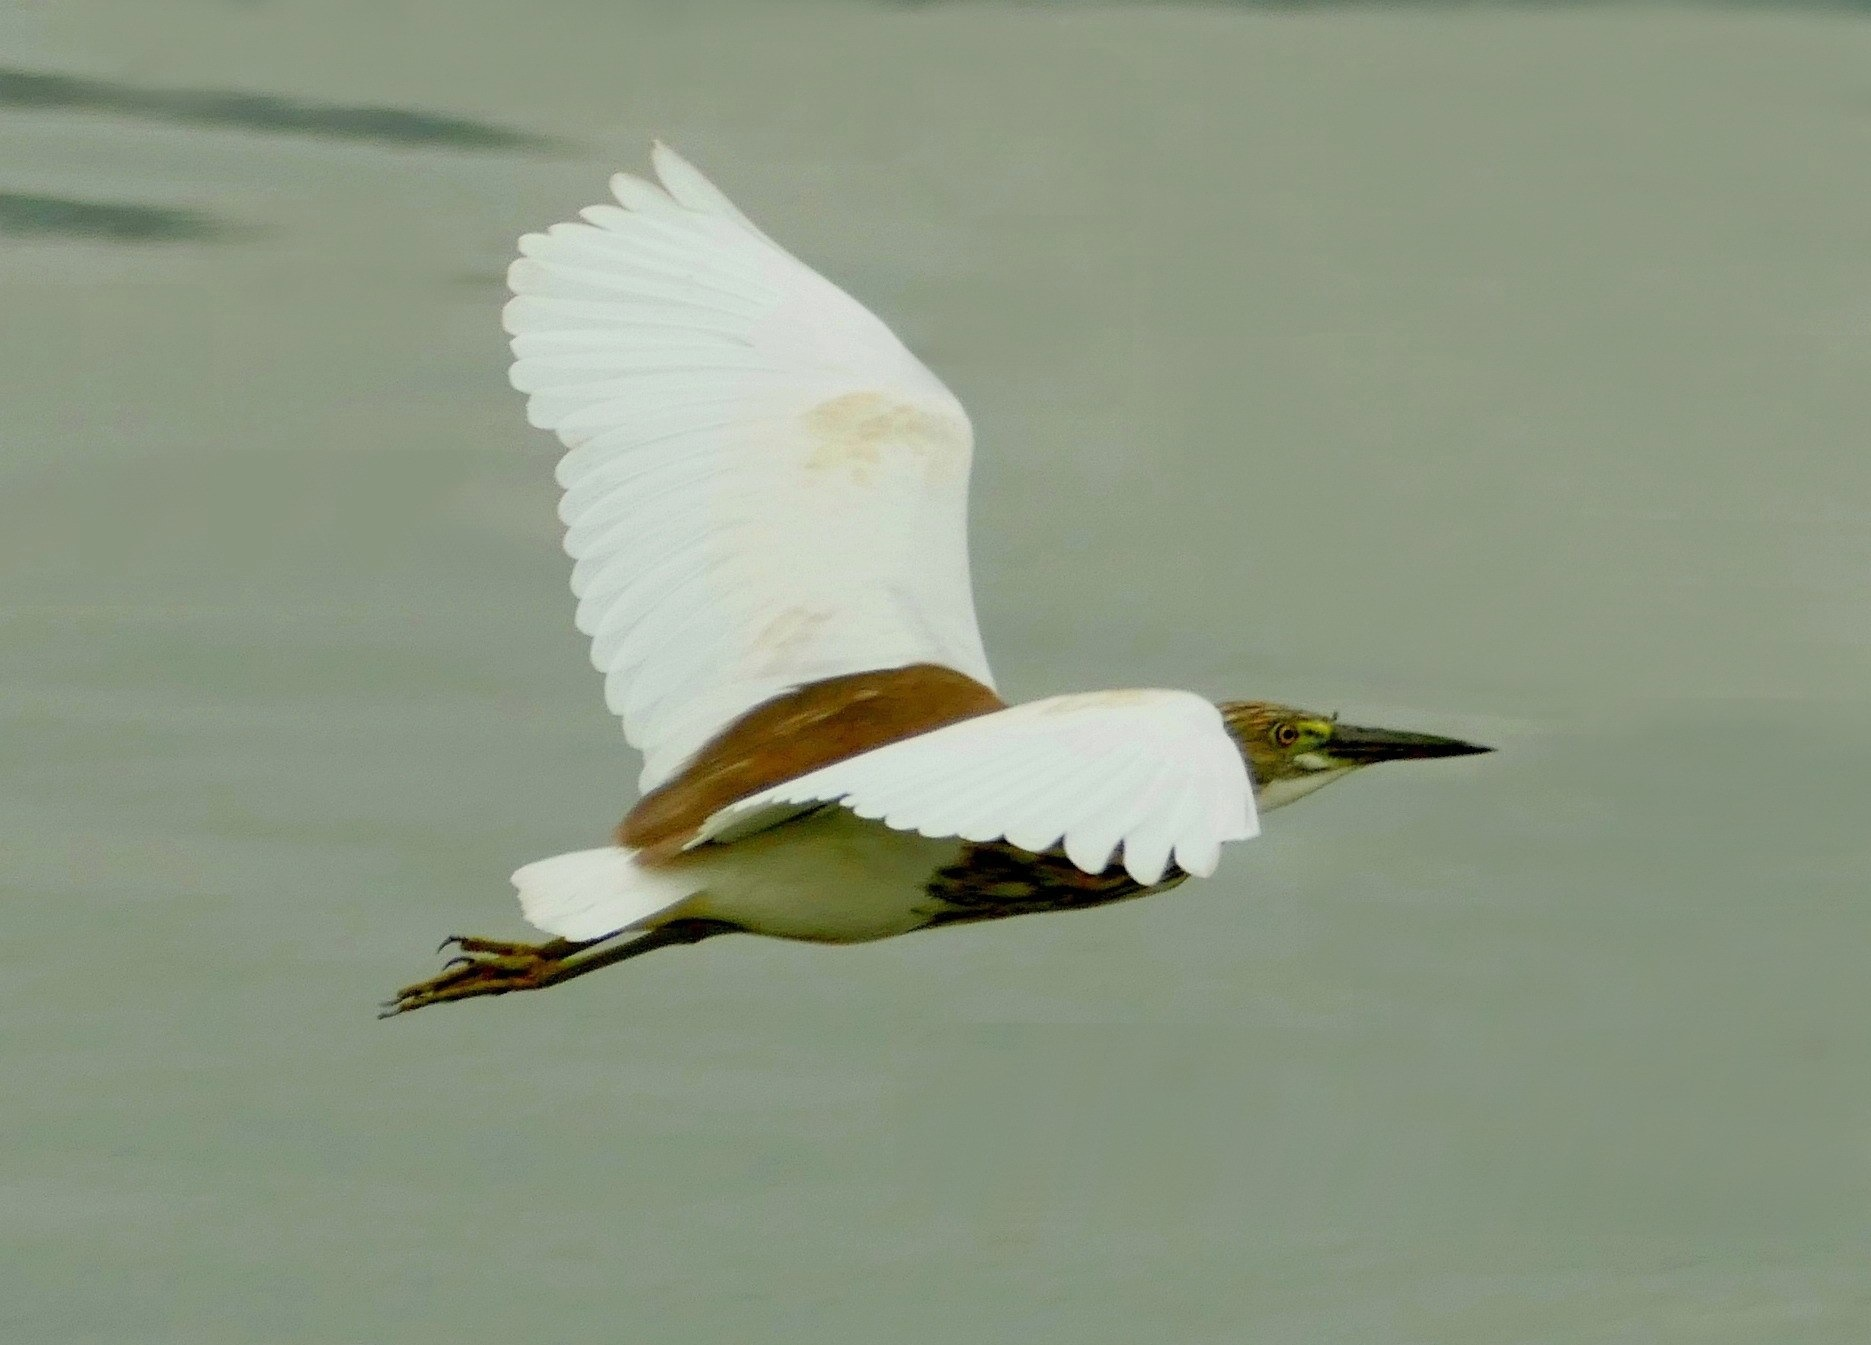 Chinese pond heron in the air by pop88123